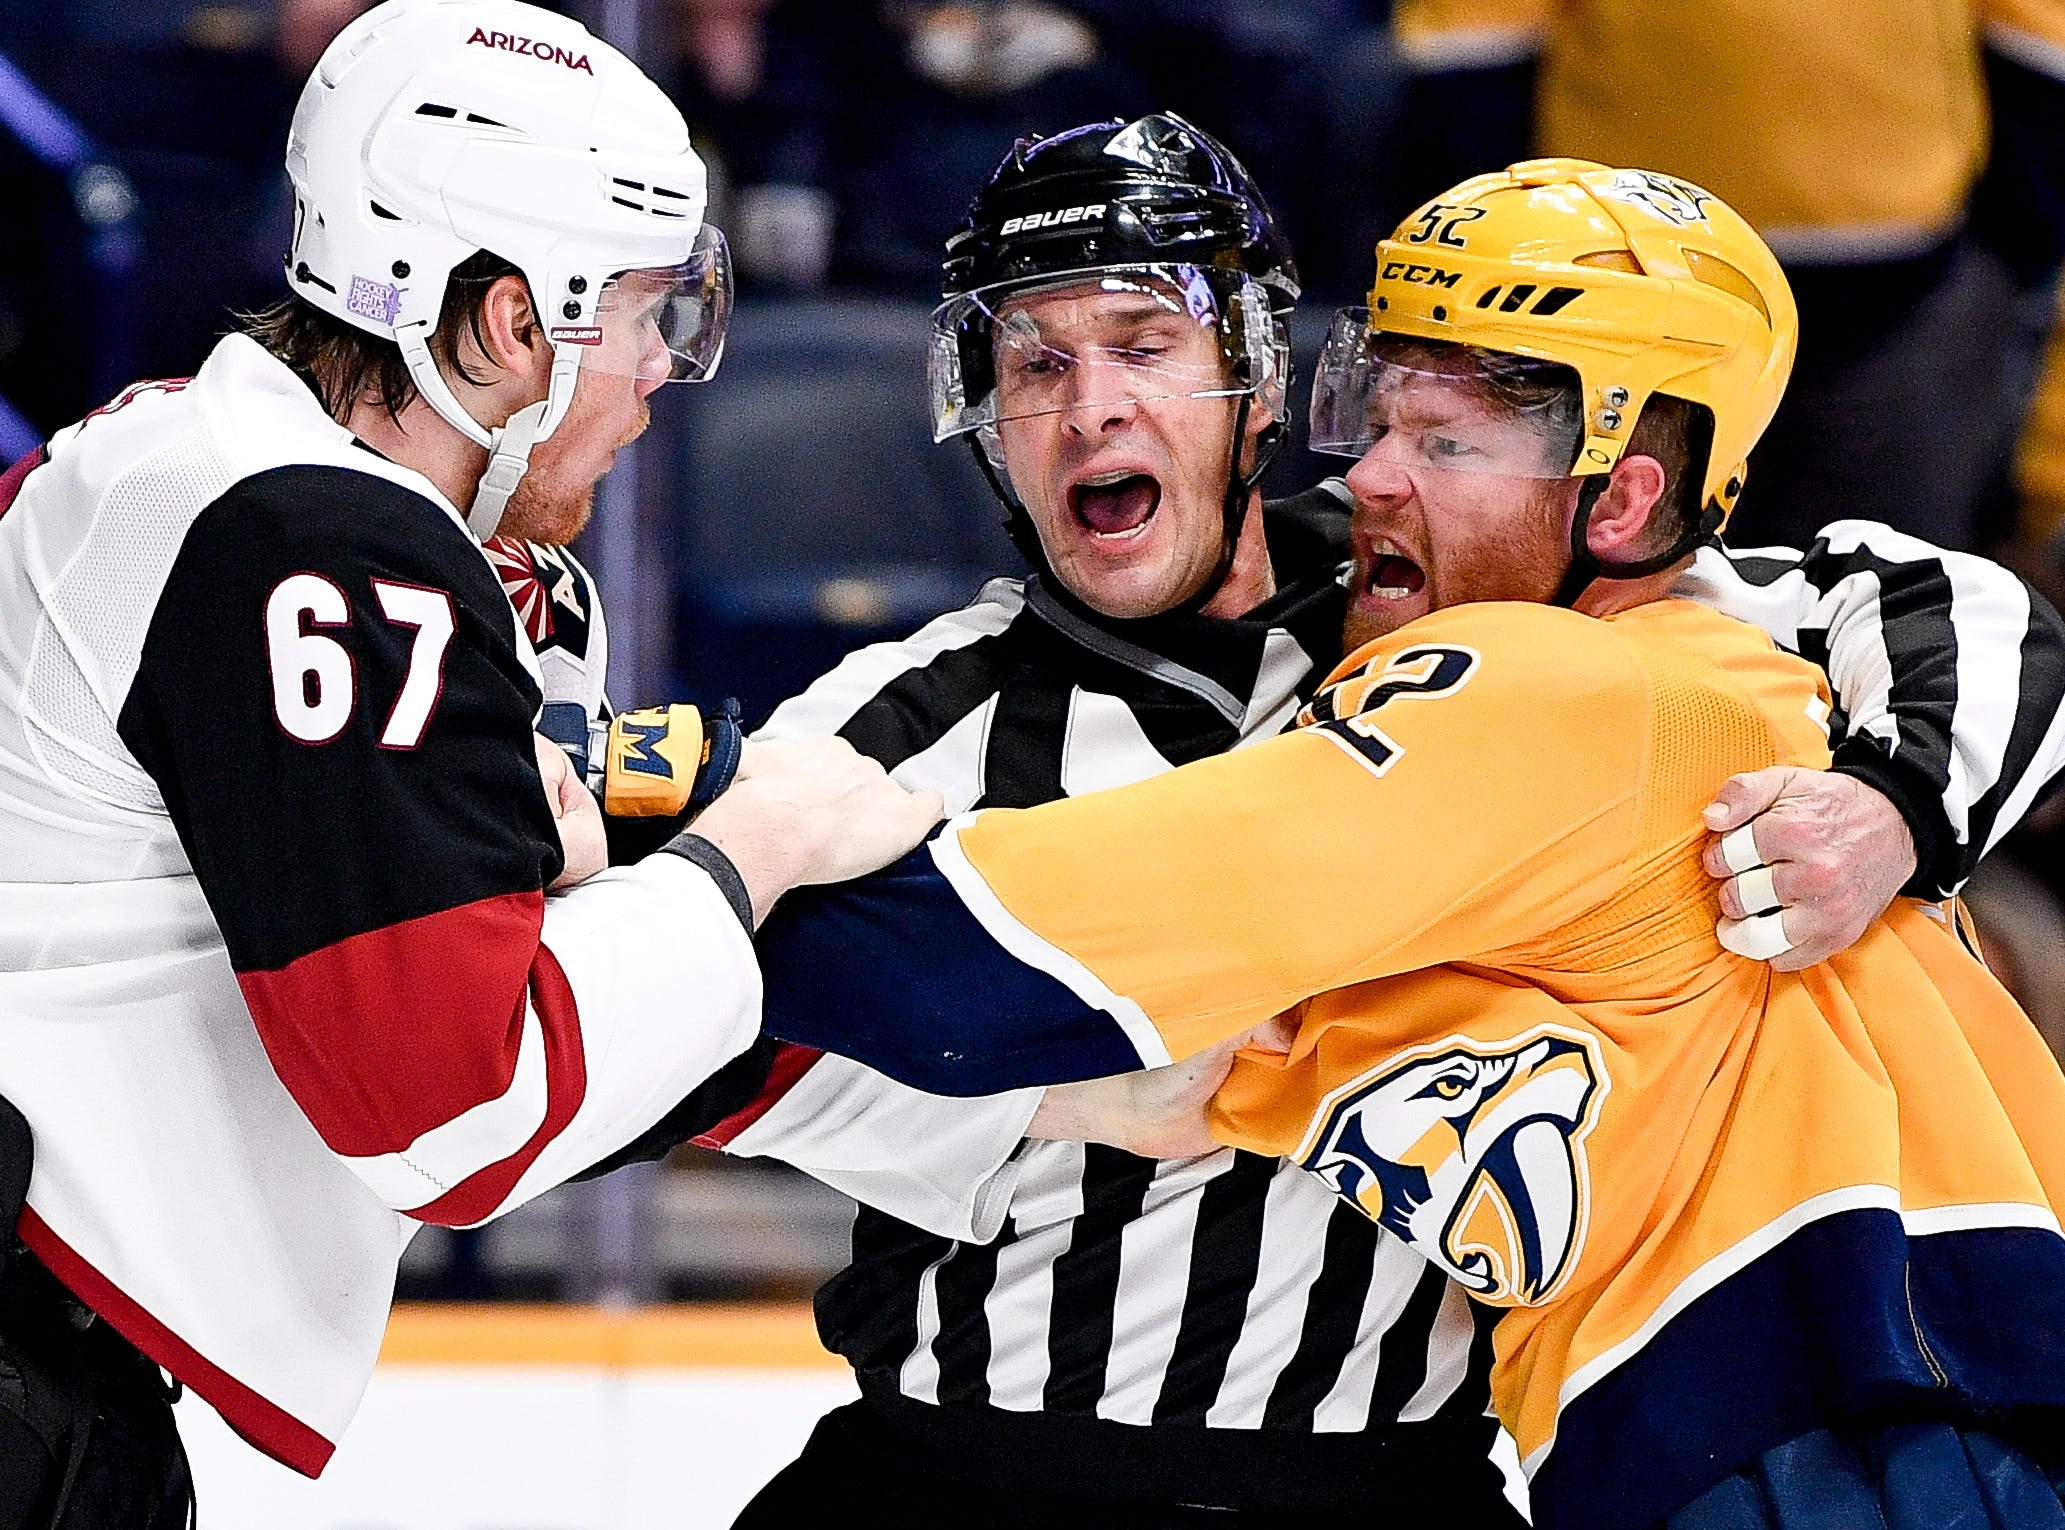 Linesman Ryan Galloway (82) breaks up a fight between Arizona Coyotes left wing Lawson Crouse (67) and Nashville Predators defenseman Matt Irwin (52) during the third period at Bridgestone Arena in Nashville, Tenn., Thursday, Nov. 29, 2018.